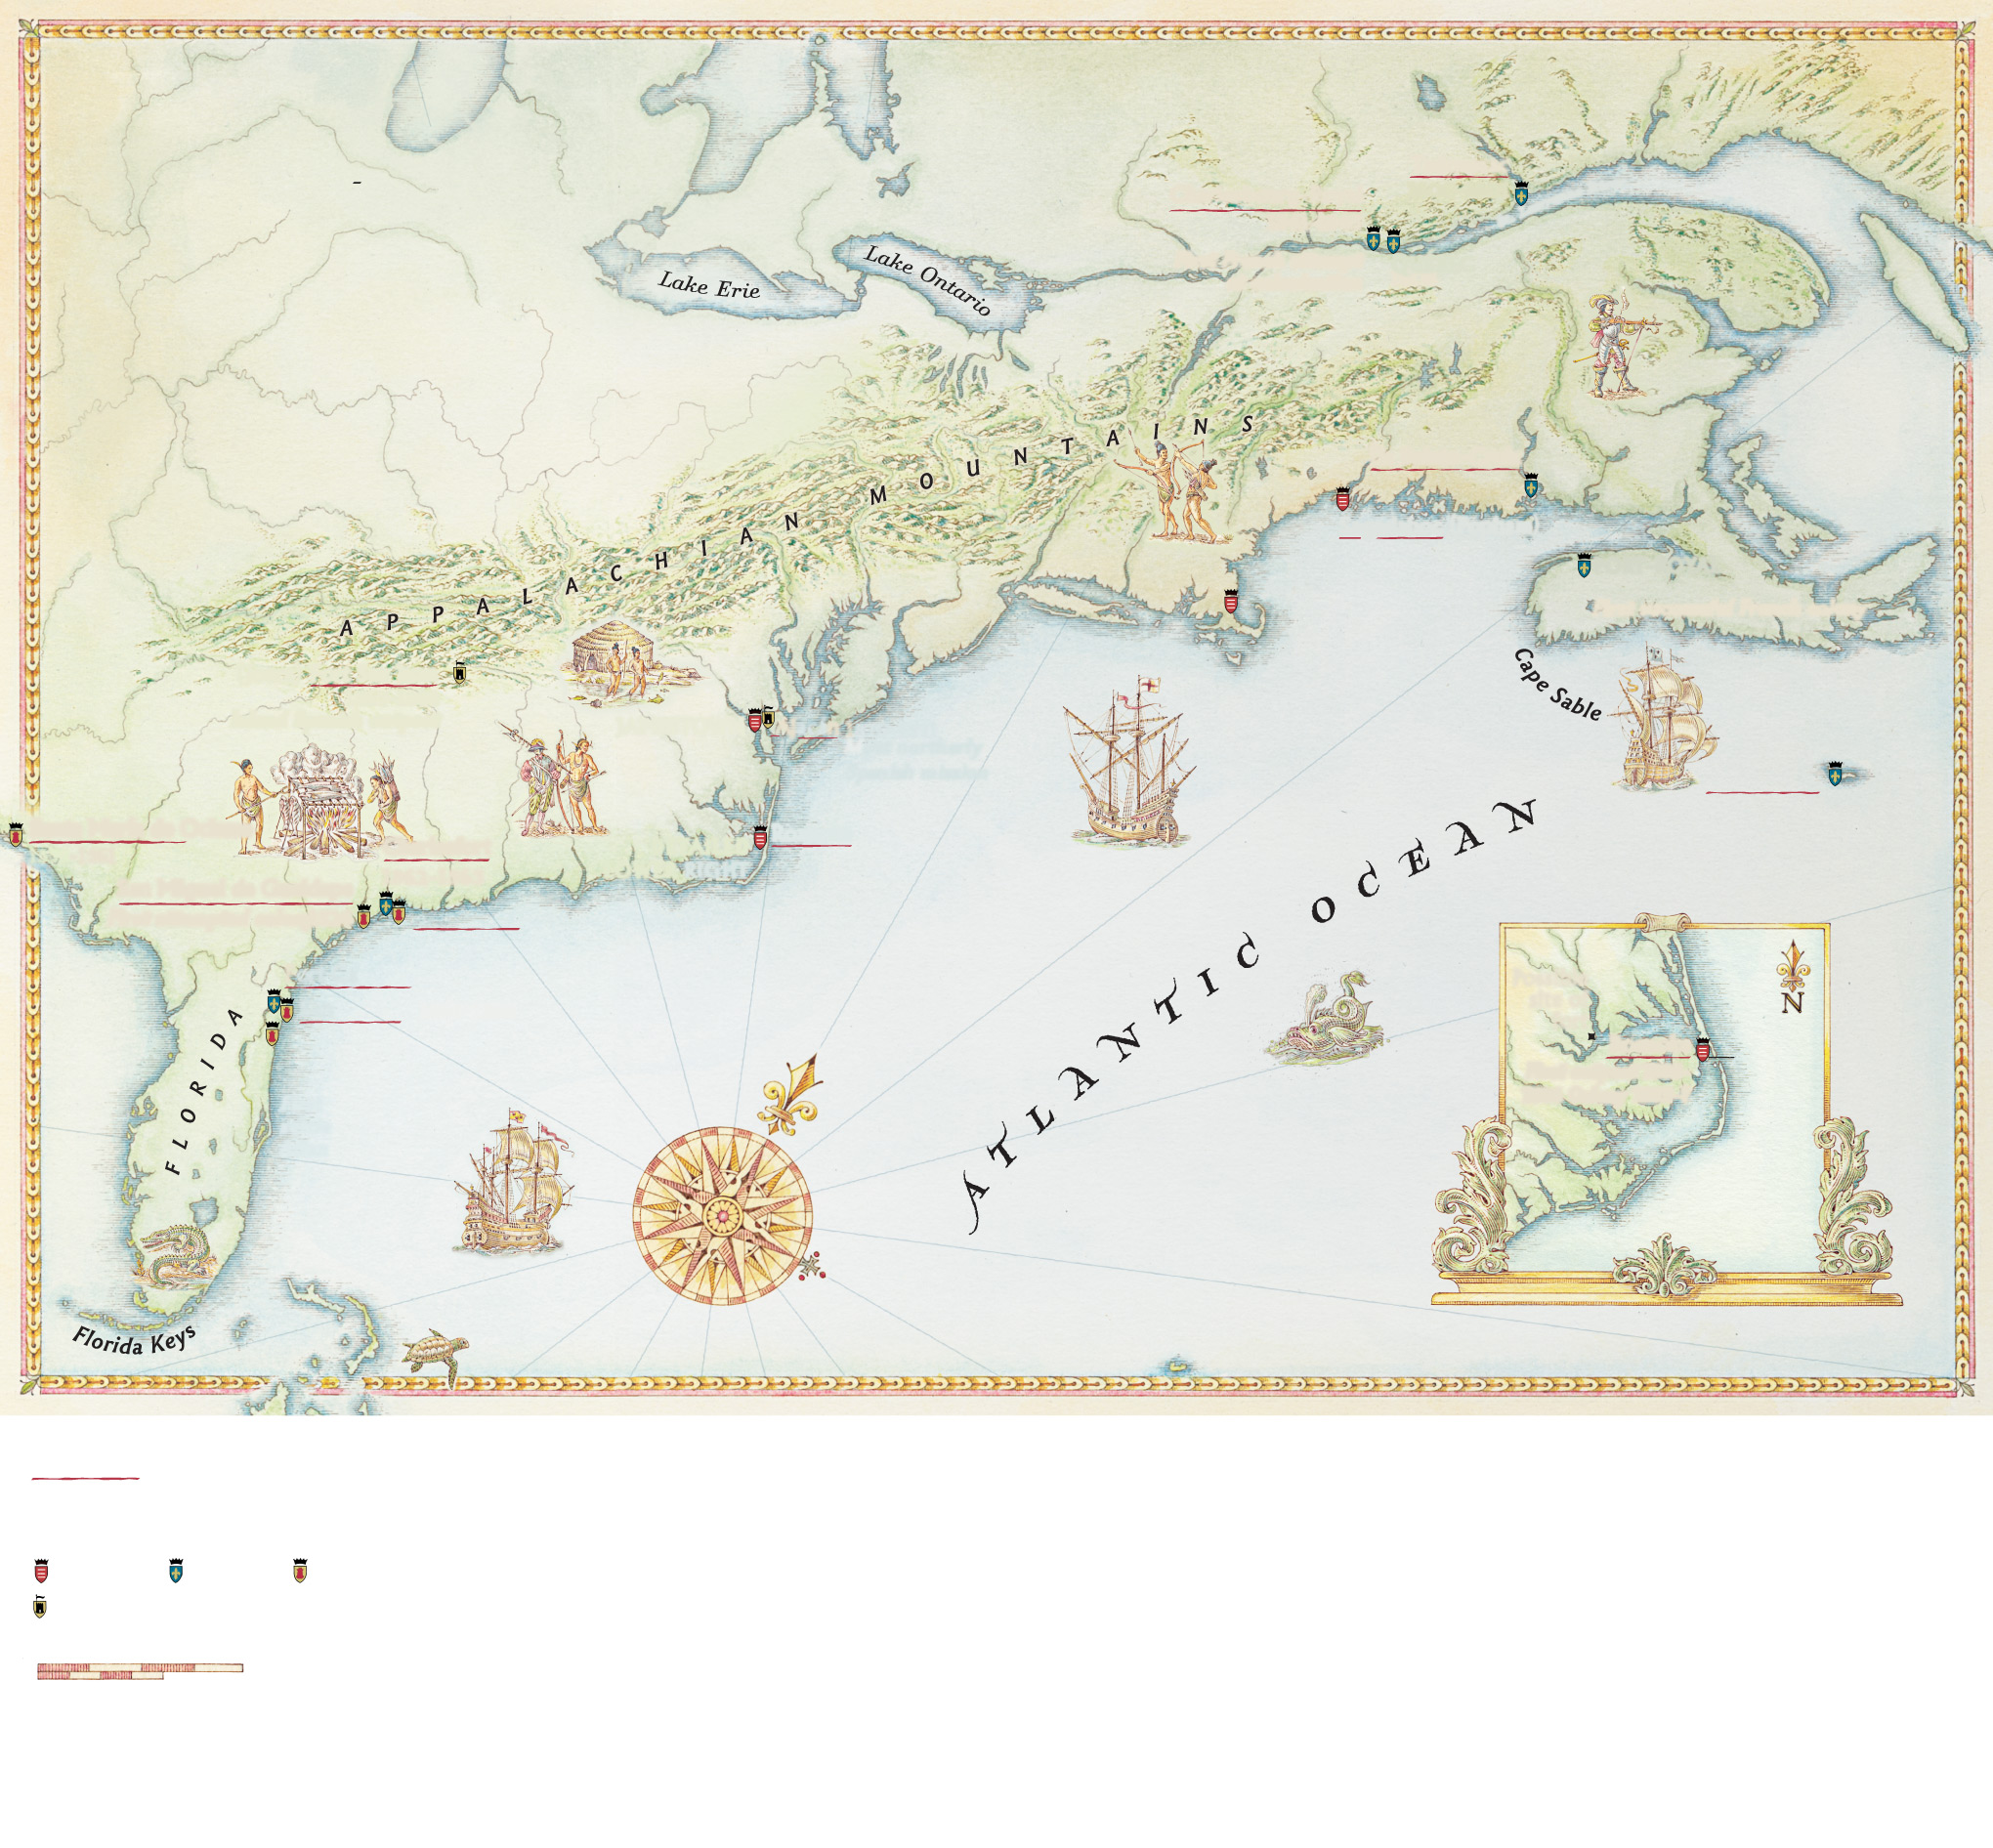 Roanoke Wasn't America's Only Lost Colony on guadalajara mexico map, puerto rico mexico map, salamanca mexico map, santa ana mexico map, cofradia mexico map, la union mexico map, las palmas mexico map, el golfo mexico map, santa rosa mexico map, socorro mexico map, sahagun mexico map, rosario mexico map, santa rita mexico map, santiago mexico map, zaragoza mexico map, santa lucia mexico map, carmen mexico map, cordoba mexico map, victoria mexico map, cortes mexico map,